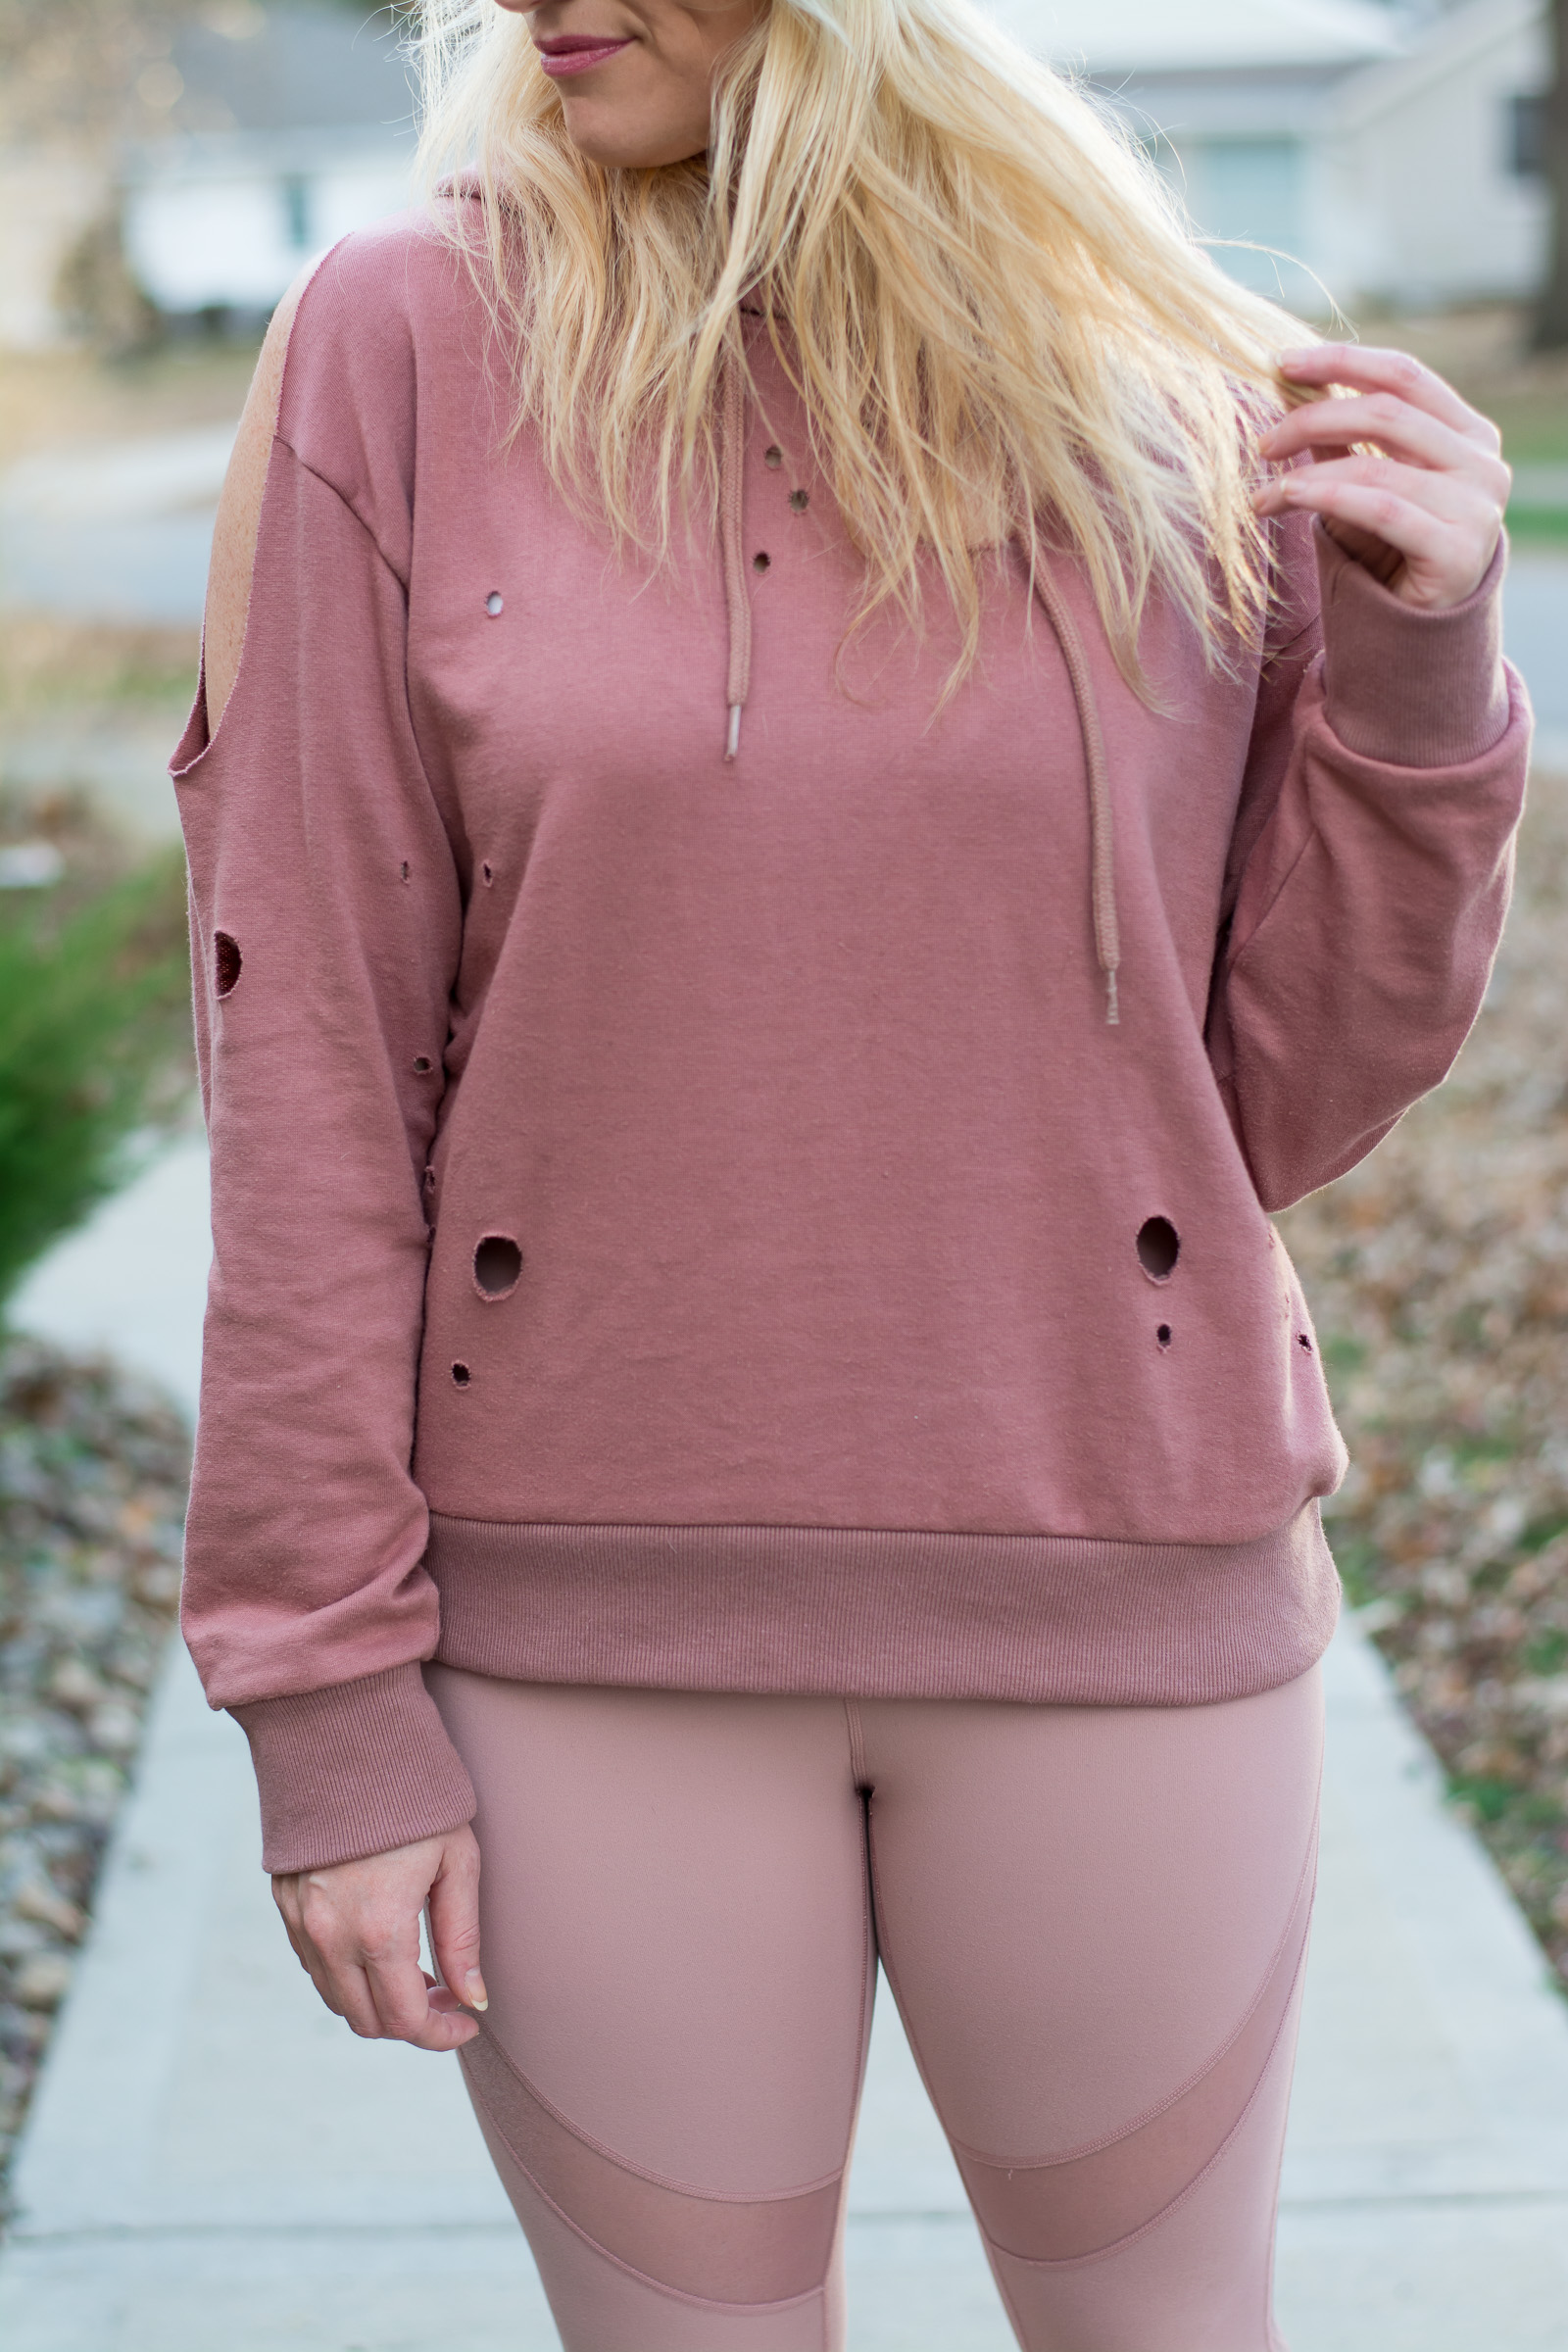 Winter Outfit: All Blush Everything. | Ashley from Le Stylo Rouge